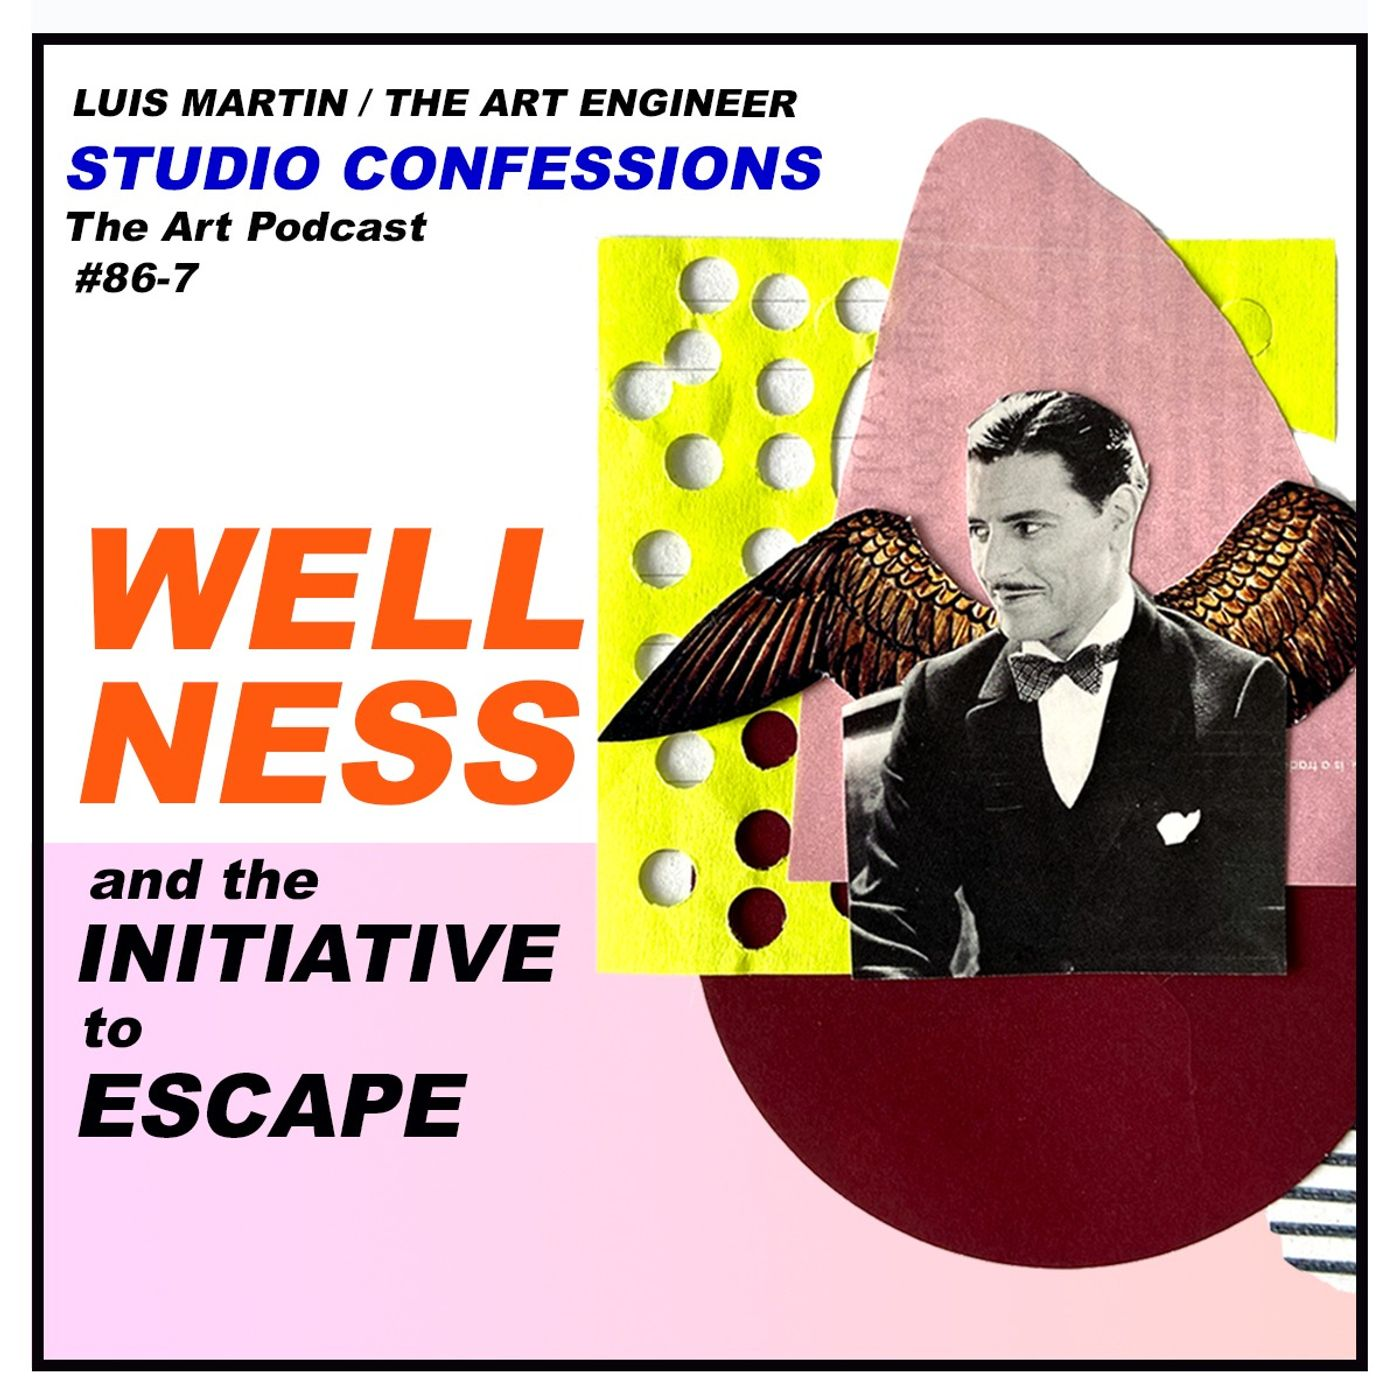 Wellness and the Initiative to Escape